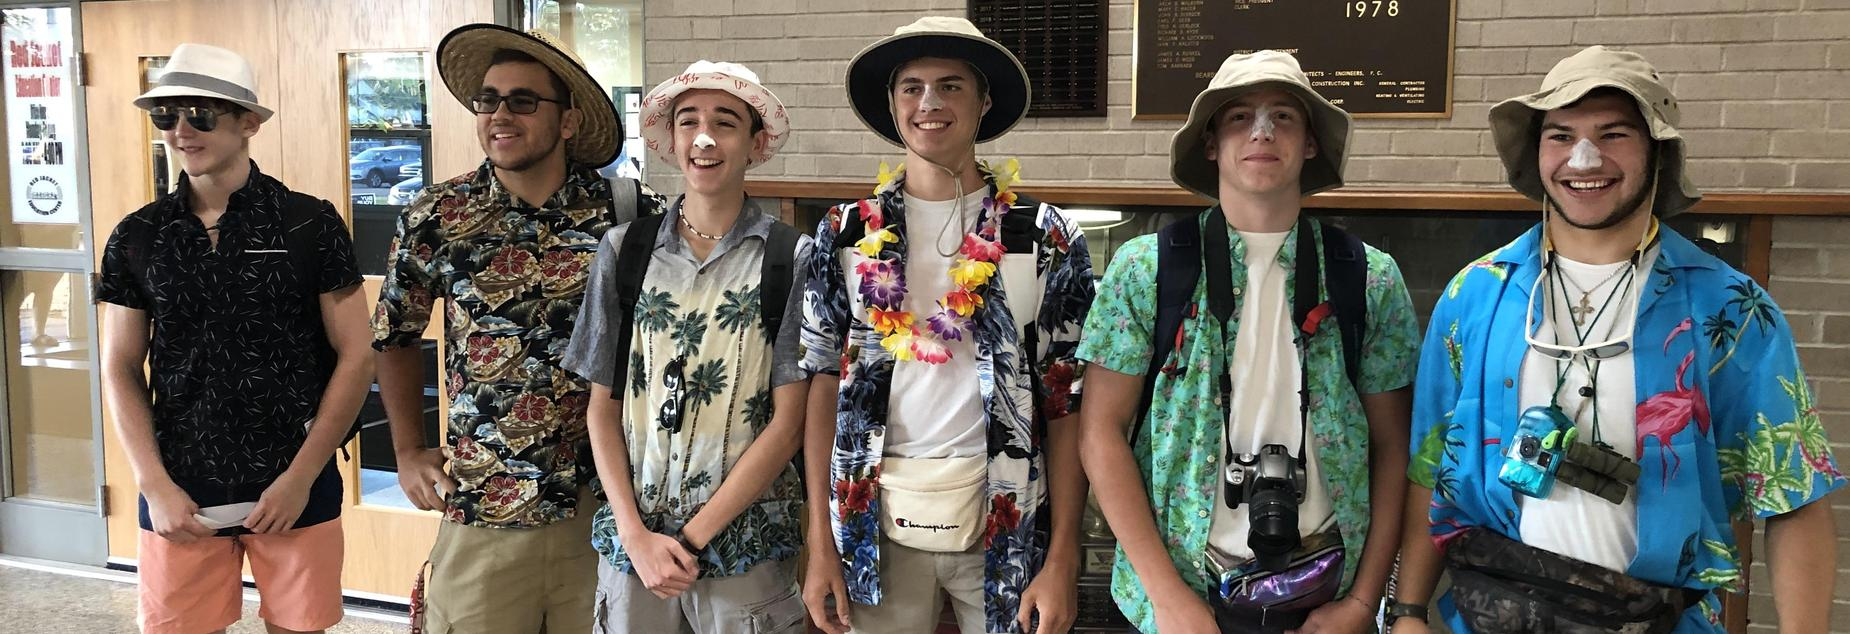 Spirit Week Tourist Day